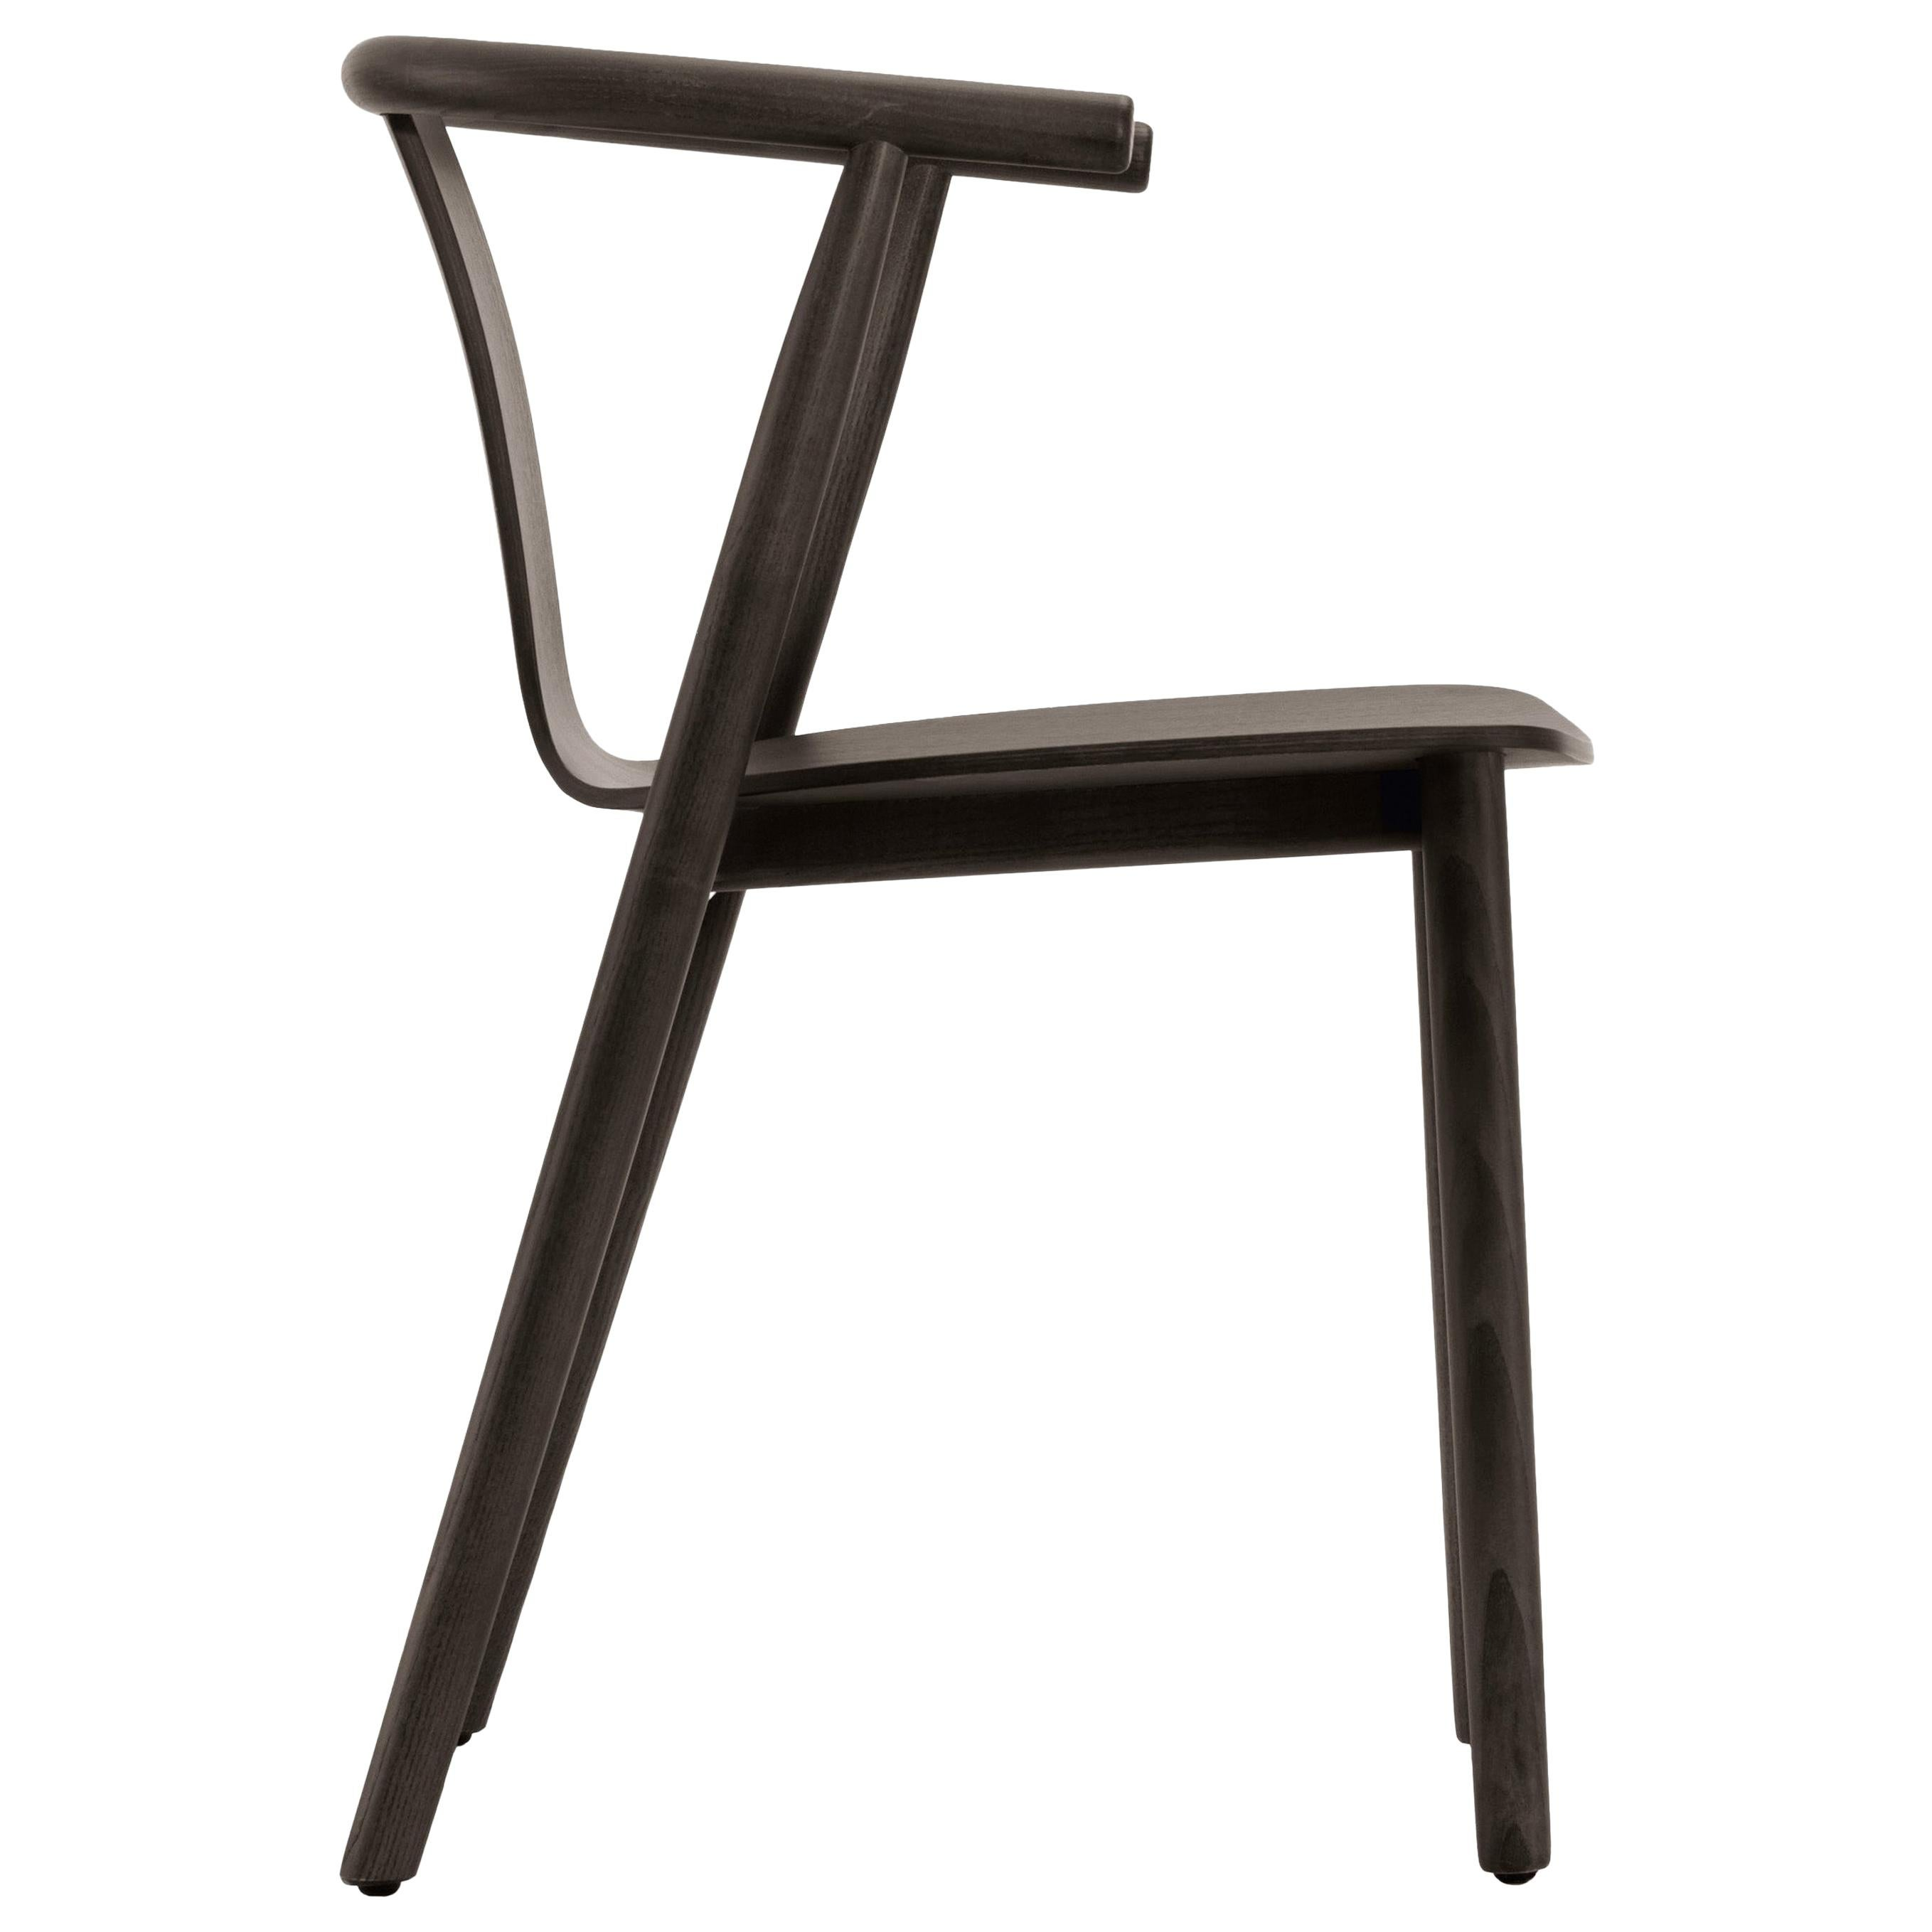 Jasper Morrison Bac Stool in Wenge Stained Ash for Cappellini